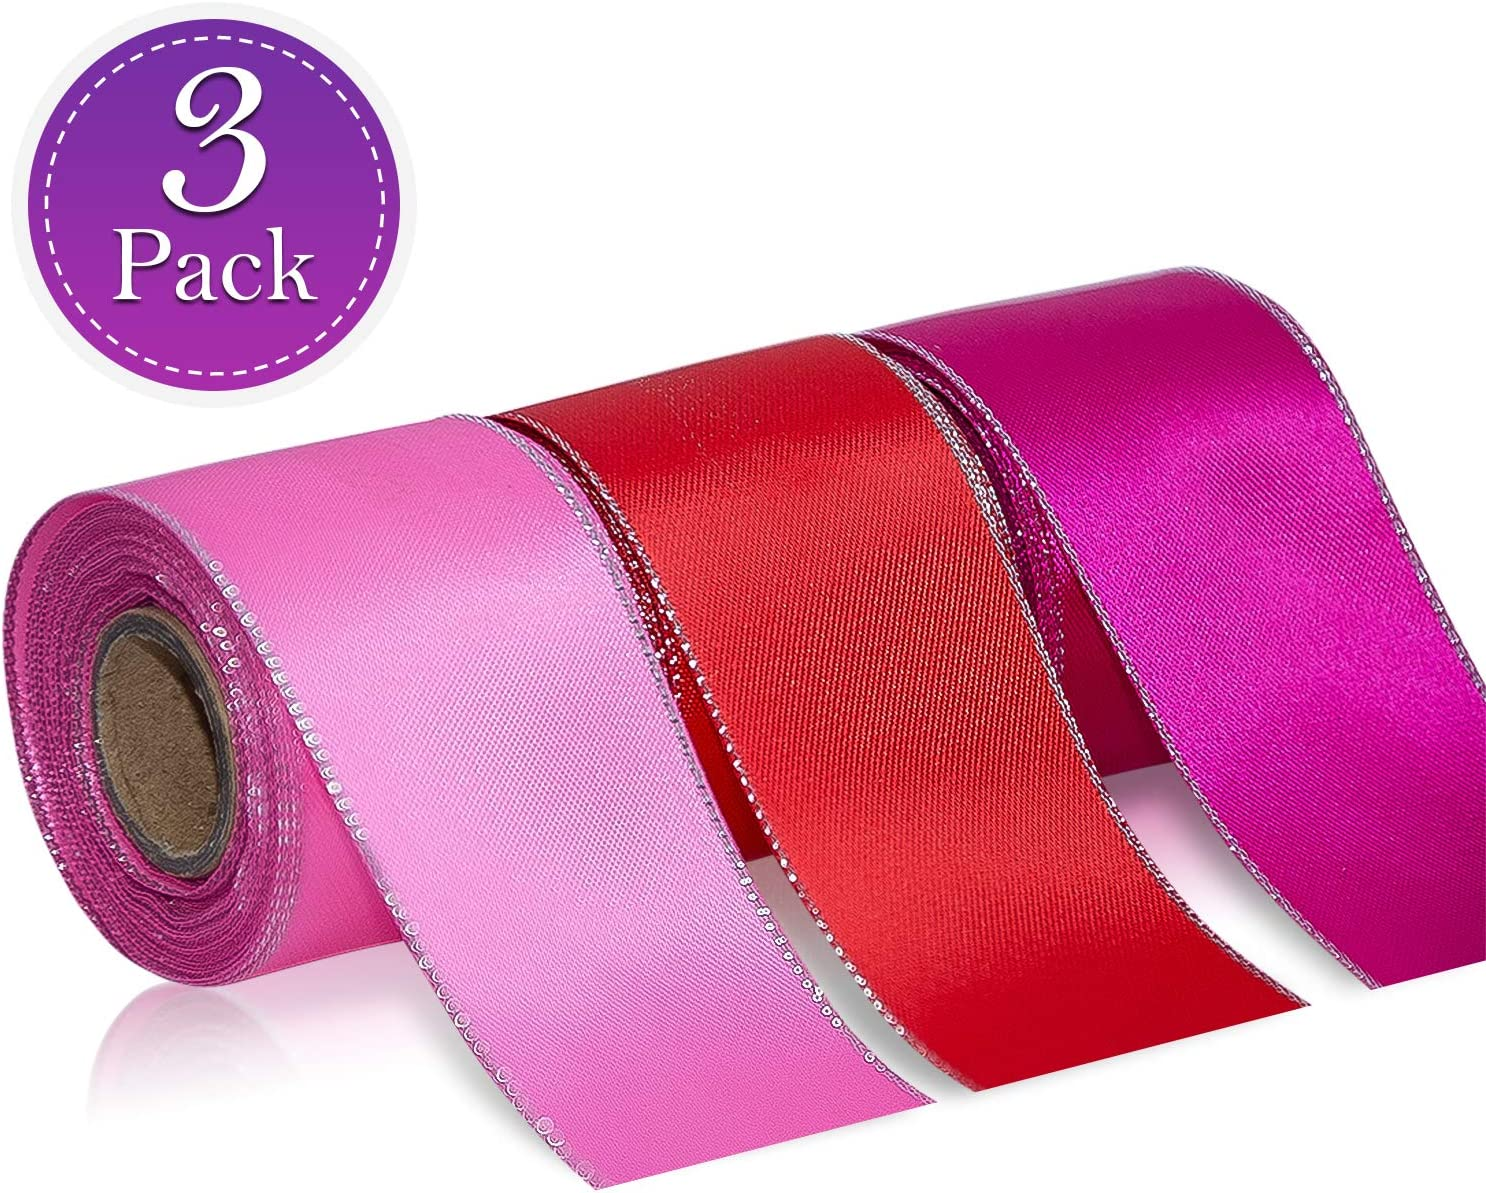 Wooppa 3pcs Sheer Chiffon Ribbon 1.5Inch×5 Yards Dusty Rose Fading Ribbon Set for Wedding Gift Package Valentines Bouquets Wrapping Birthday Baby Shower Home Decor Wreath Decorations Fabric